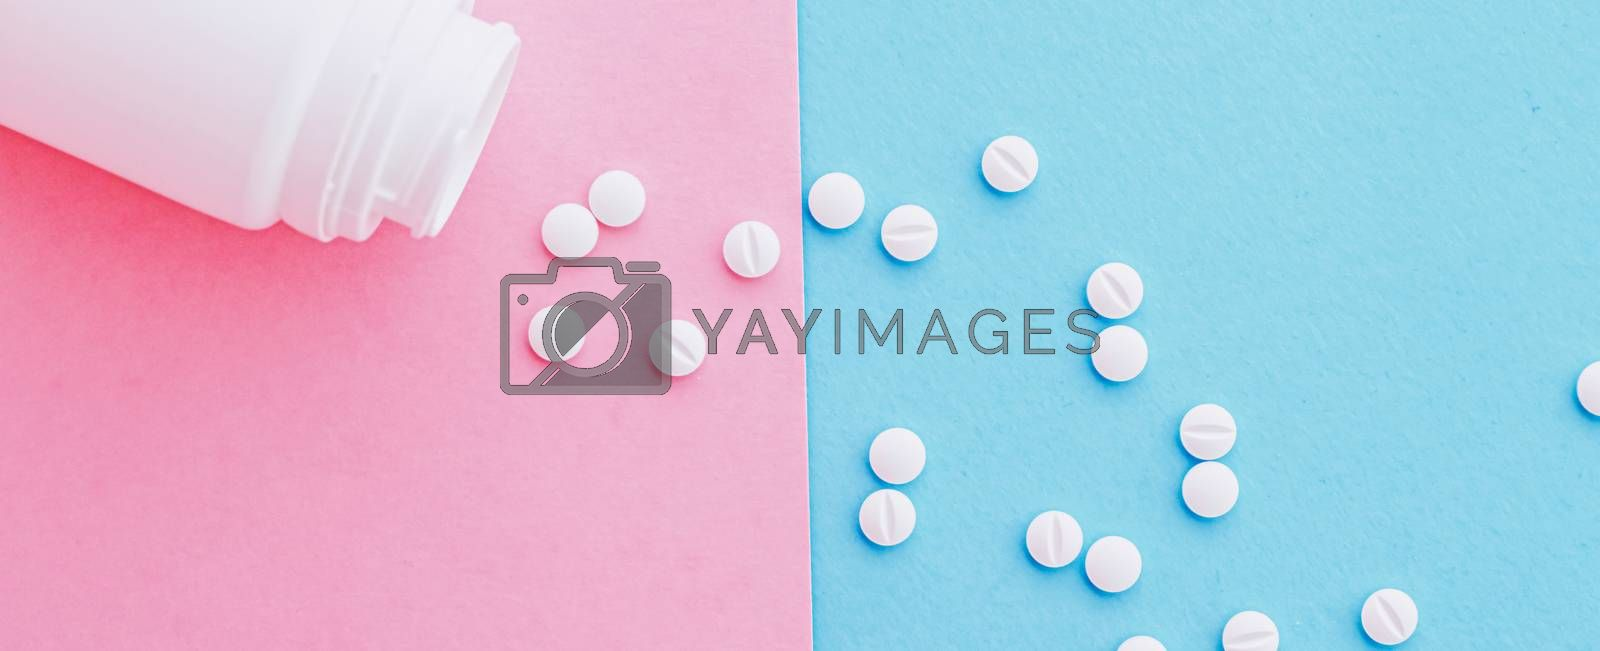 Medical pills and drugs, medicine for health care and clinical therapy